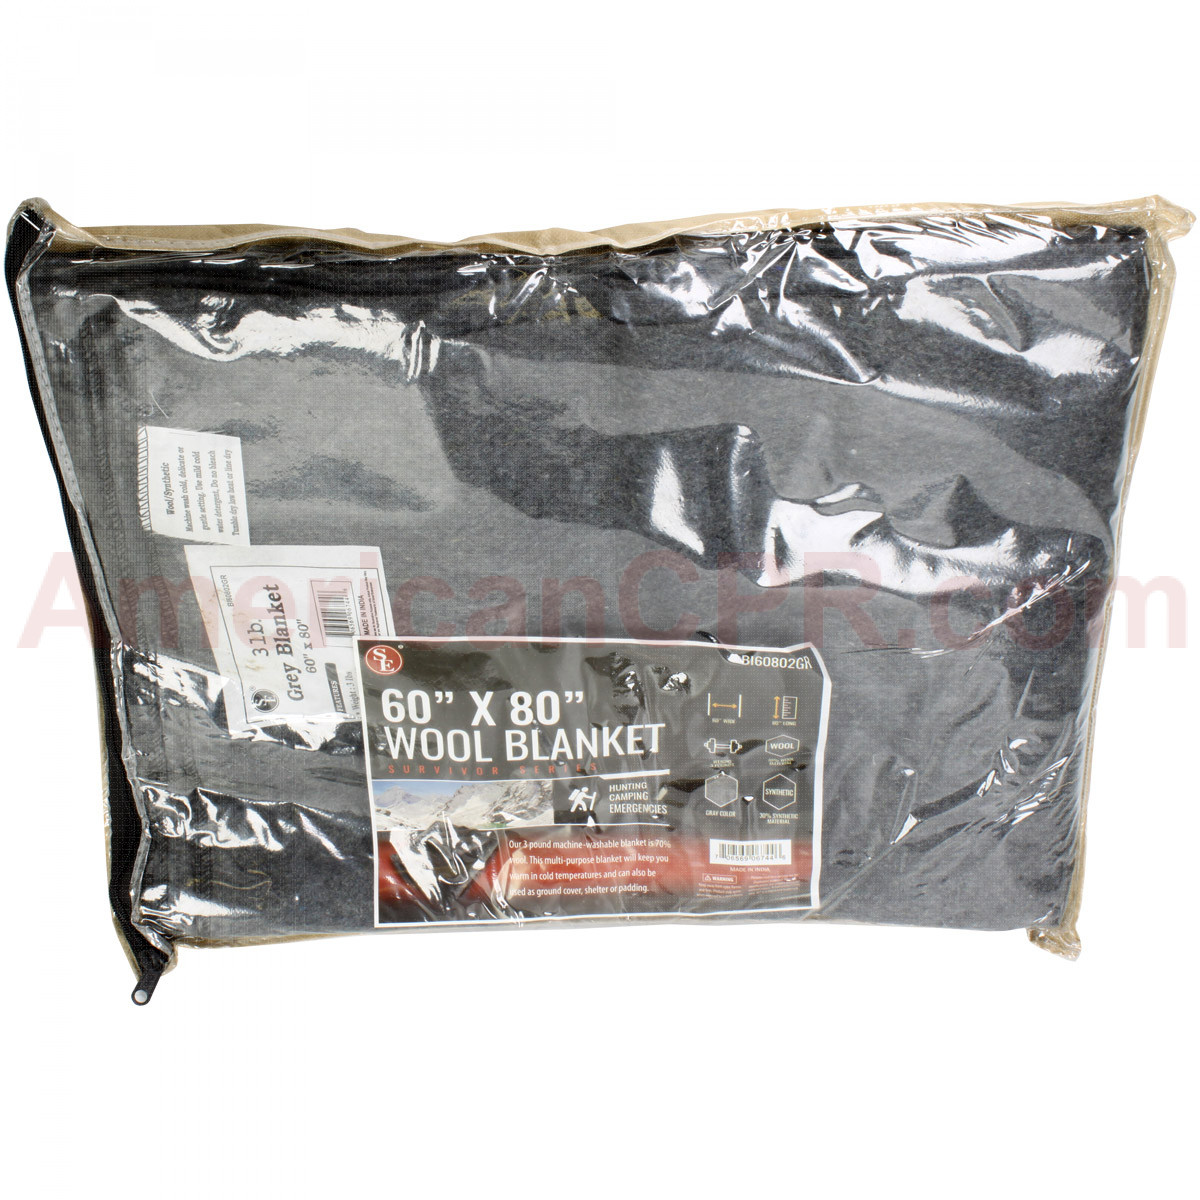 "60-70% Wool Blanket 60"" x 80"" - Value Brand"